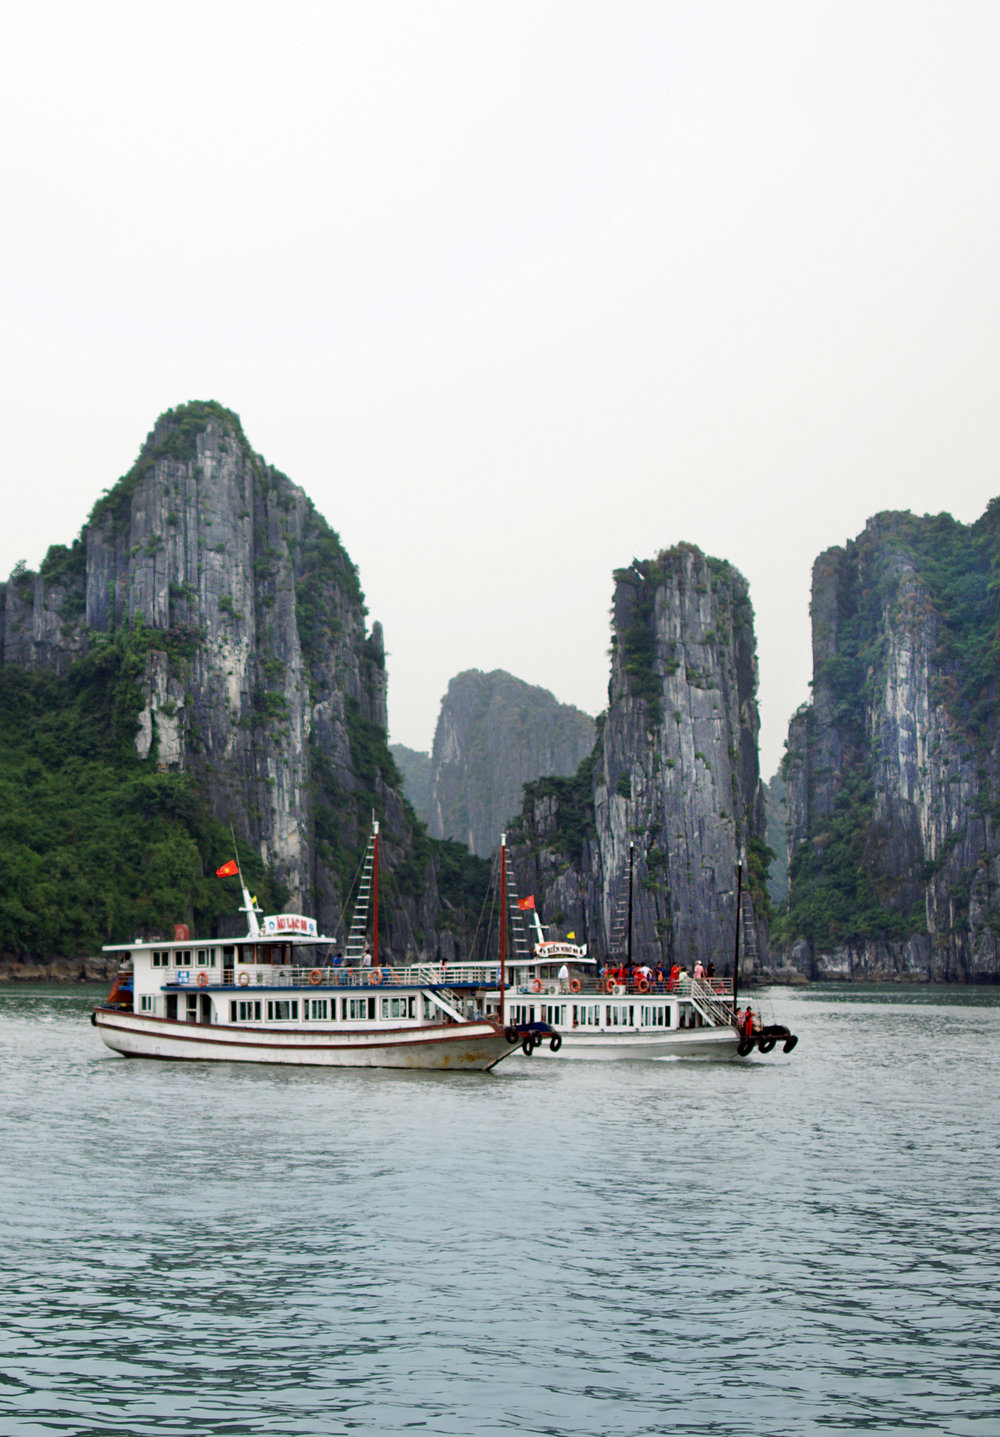 HALONG BAY CRUISE  Whether you book a day trip, or a cruise boat, you're going to want see the limestone islets as close as possible. The tranquil views are really unforgettable!